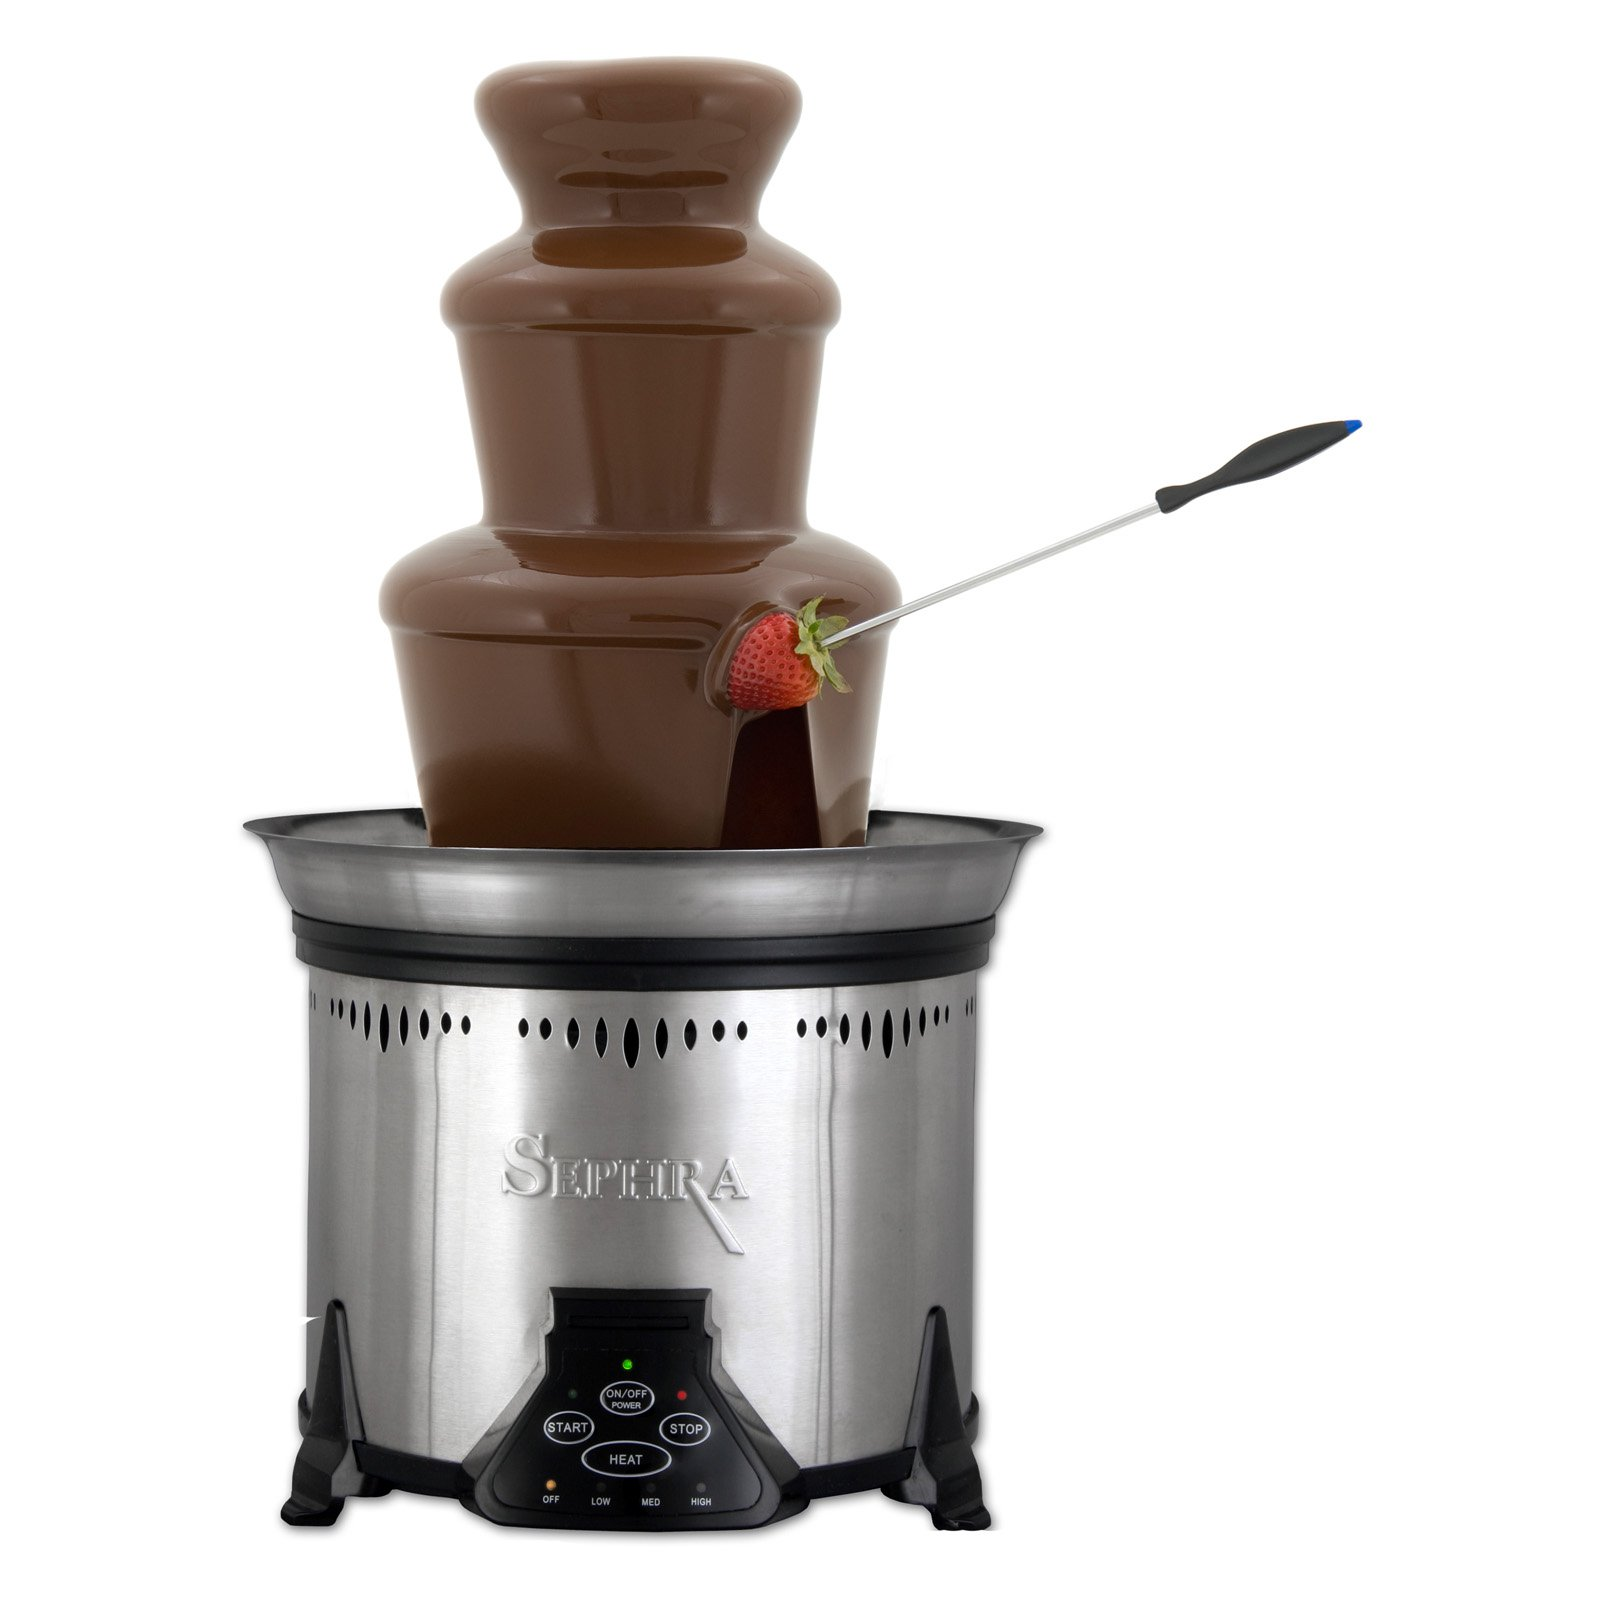 Sephra CF18M Elite Home Chocolate Fountain-Stainless Steel by Sephra